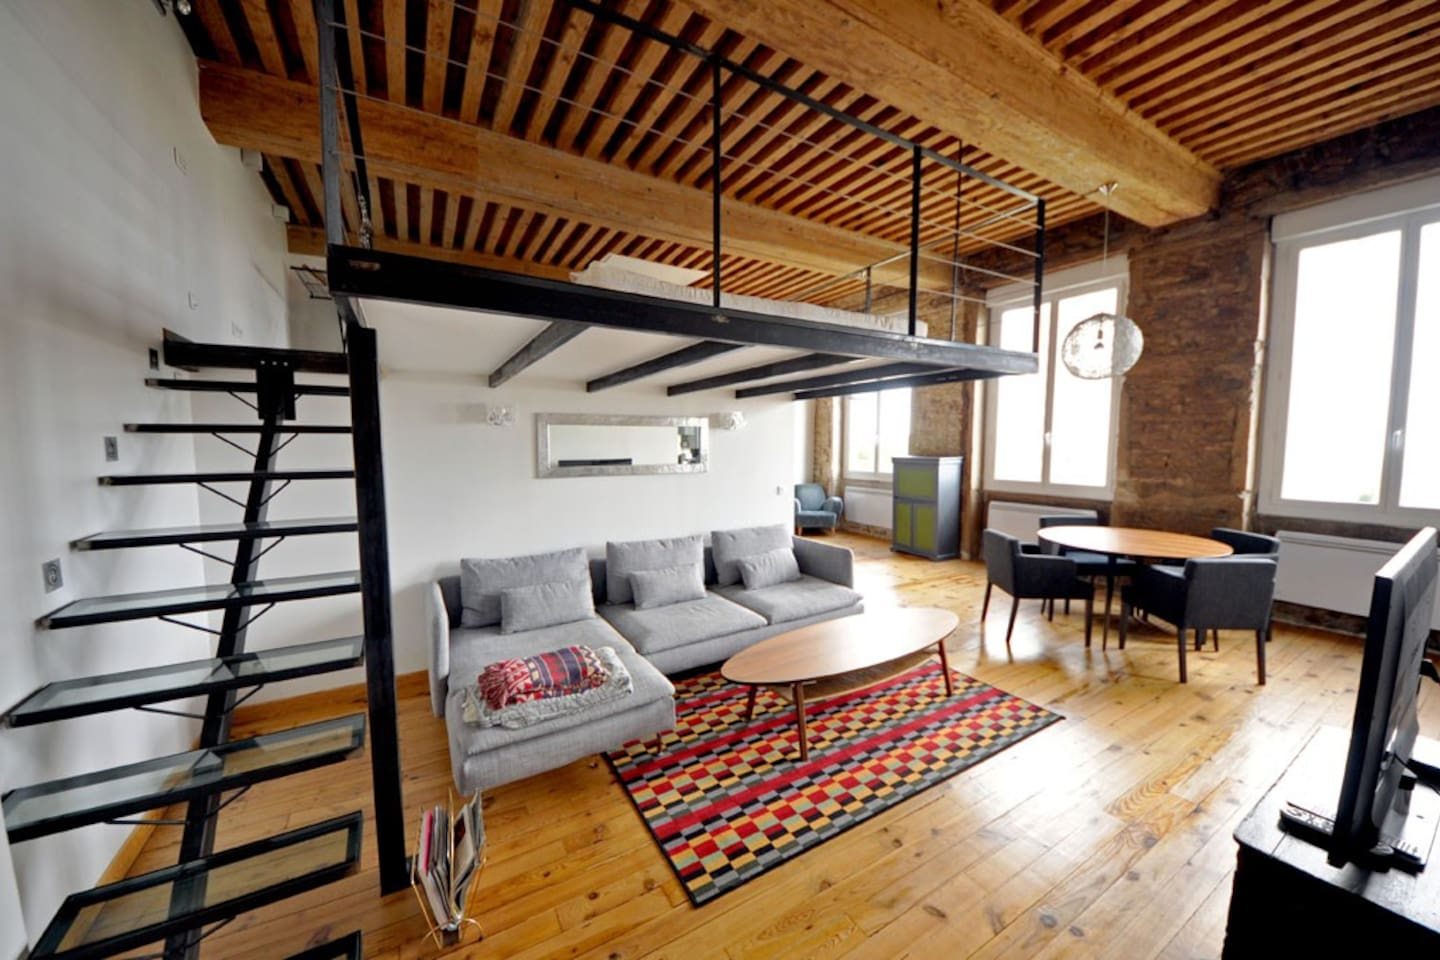 Loft Canut in the croix rousse area - Lofts for Rent in Lyon, Rhône ...